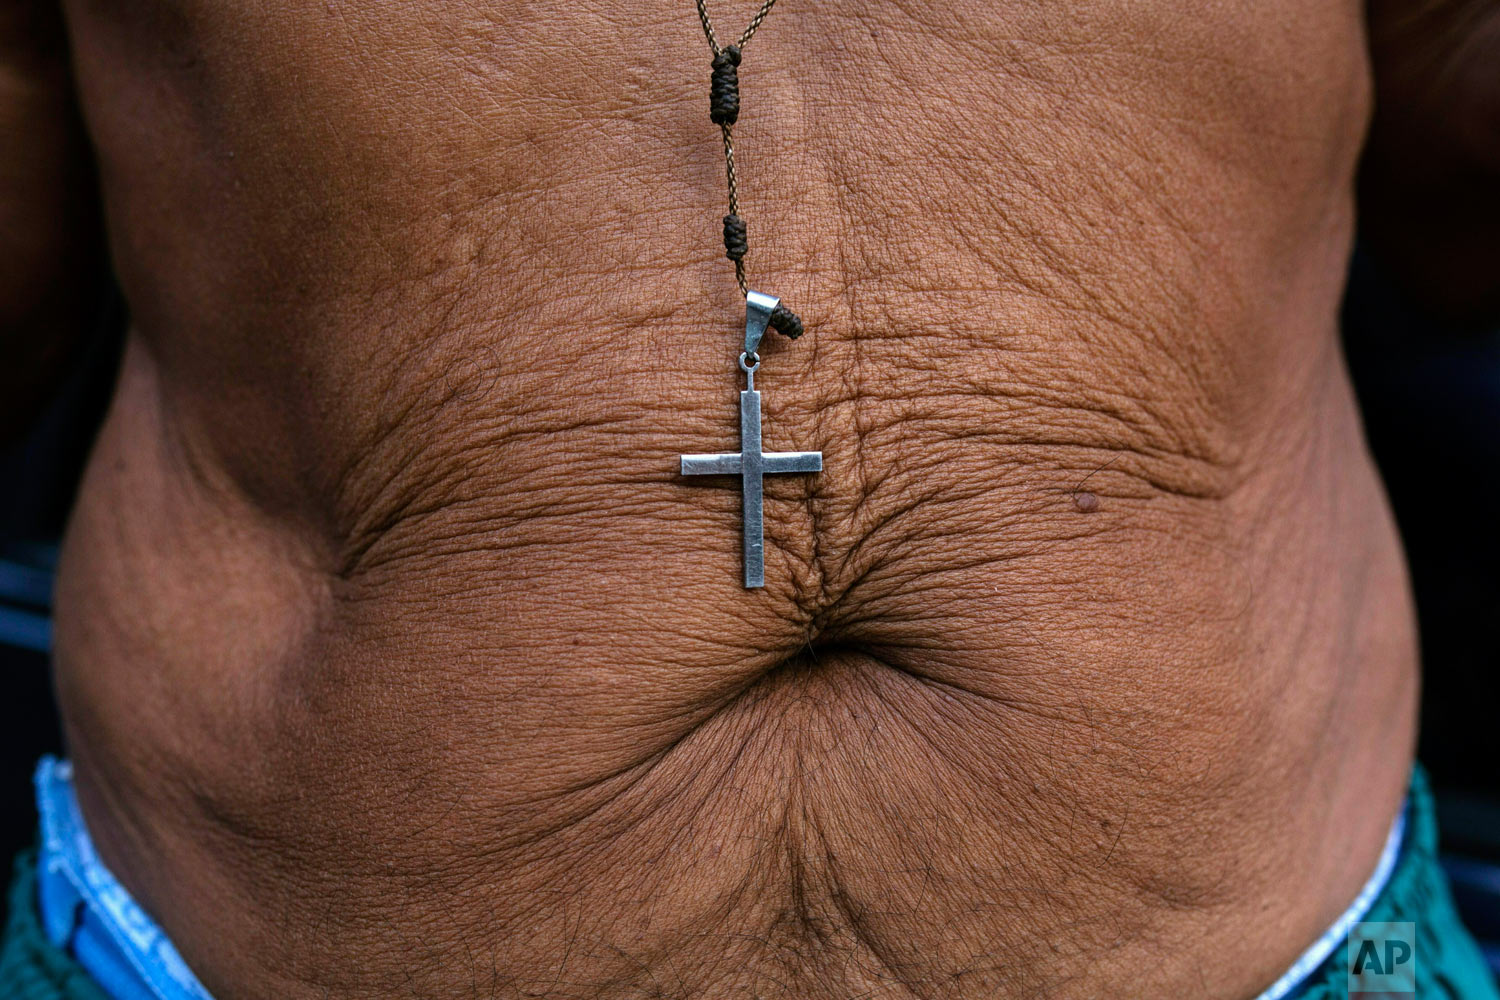 A crucifix hangs over the belly of 71-year-old Rafael Ricardo, who says he has lost 21 kilos in the last 2 years due to the economic crisis in the country, in Caracas, Venezuela. (AP Photo/Rodrigo Abd)